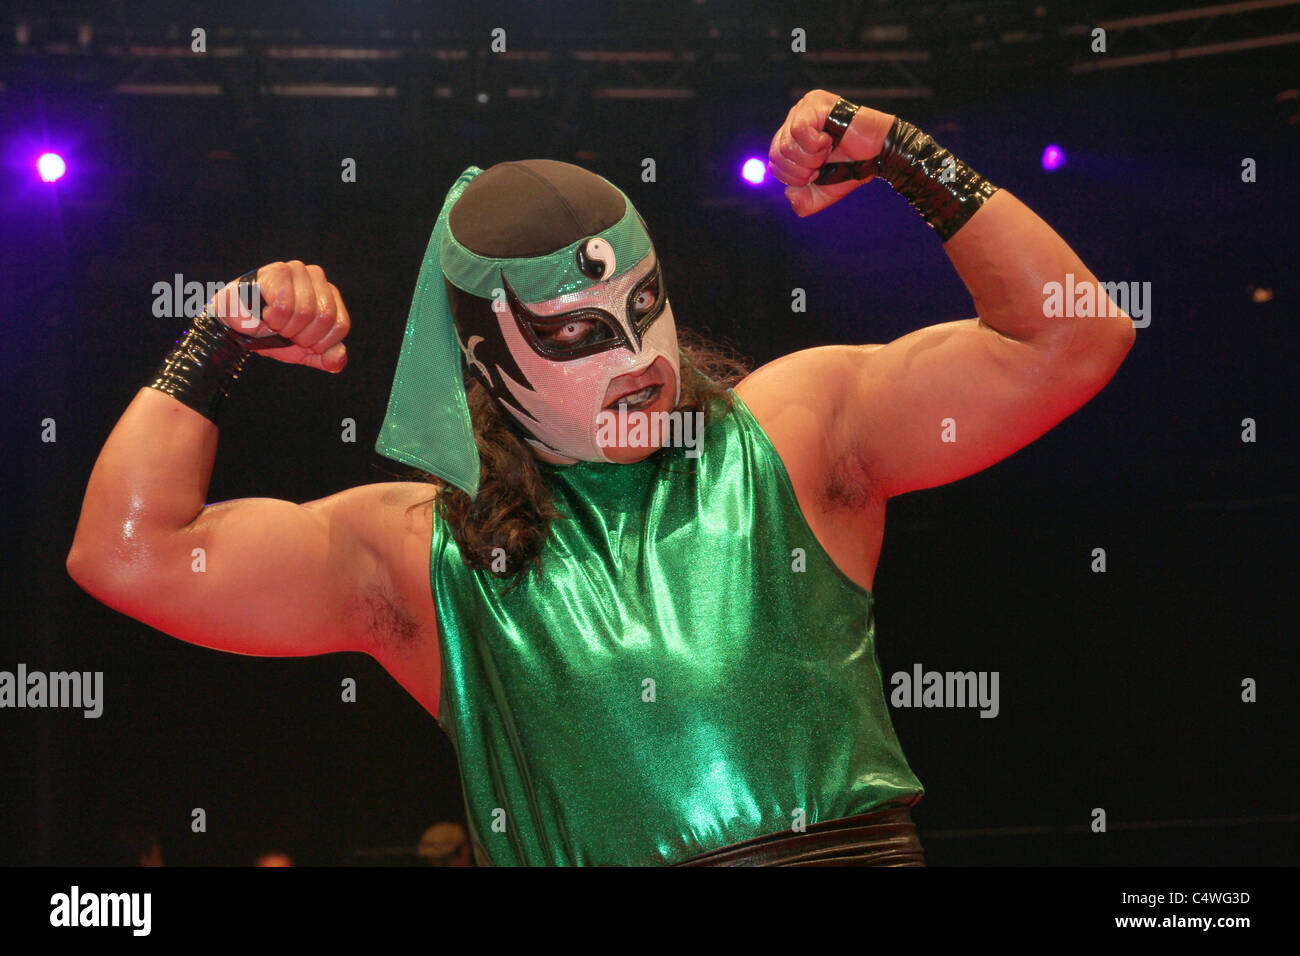 Mexican cult wrestlers Lucha Libre training in Mexico - Stock Image